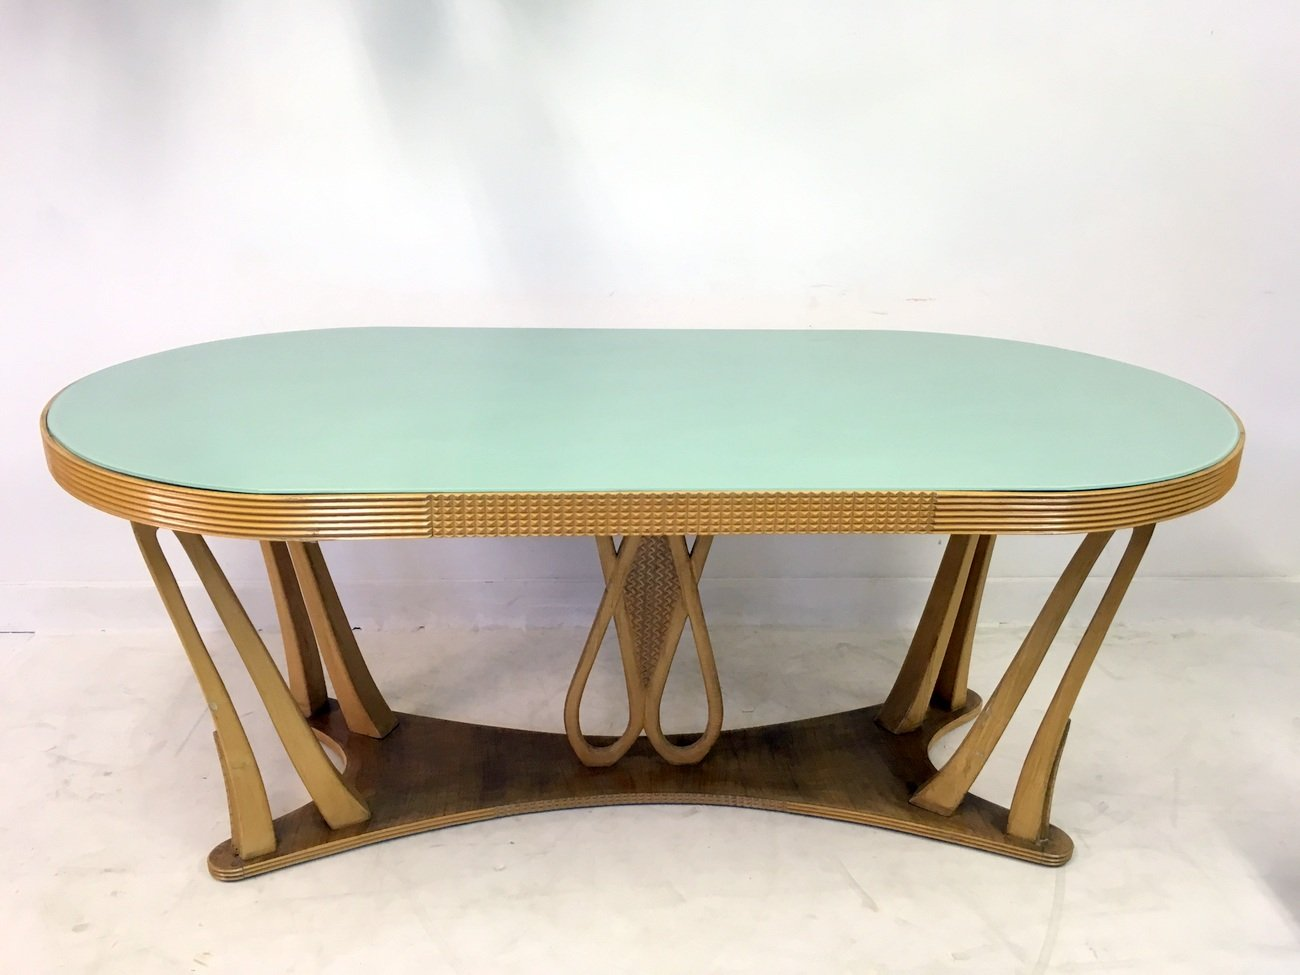 Vintage Italian Dining Table With Glass Top, 1940s